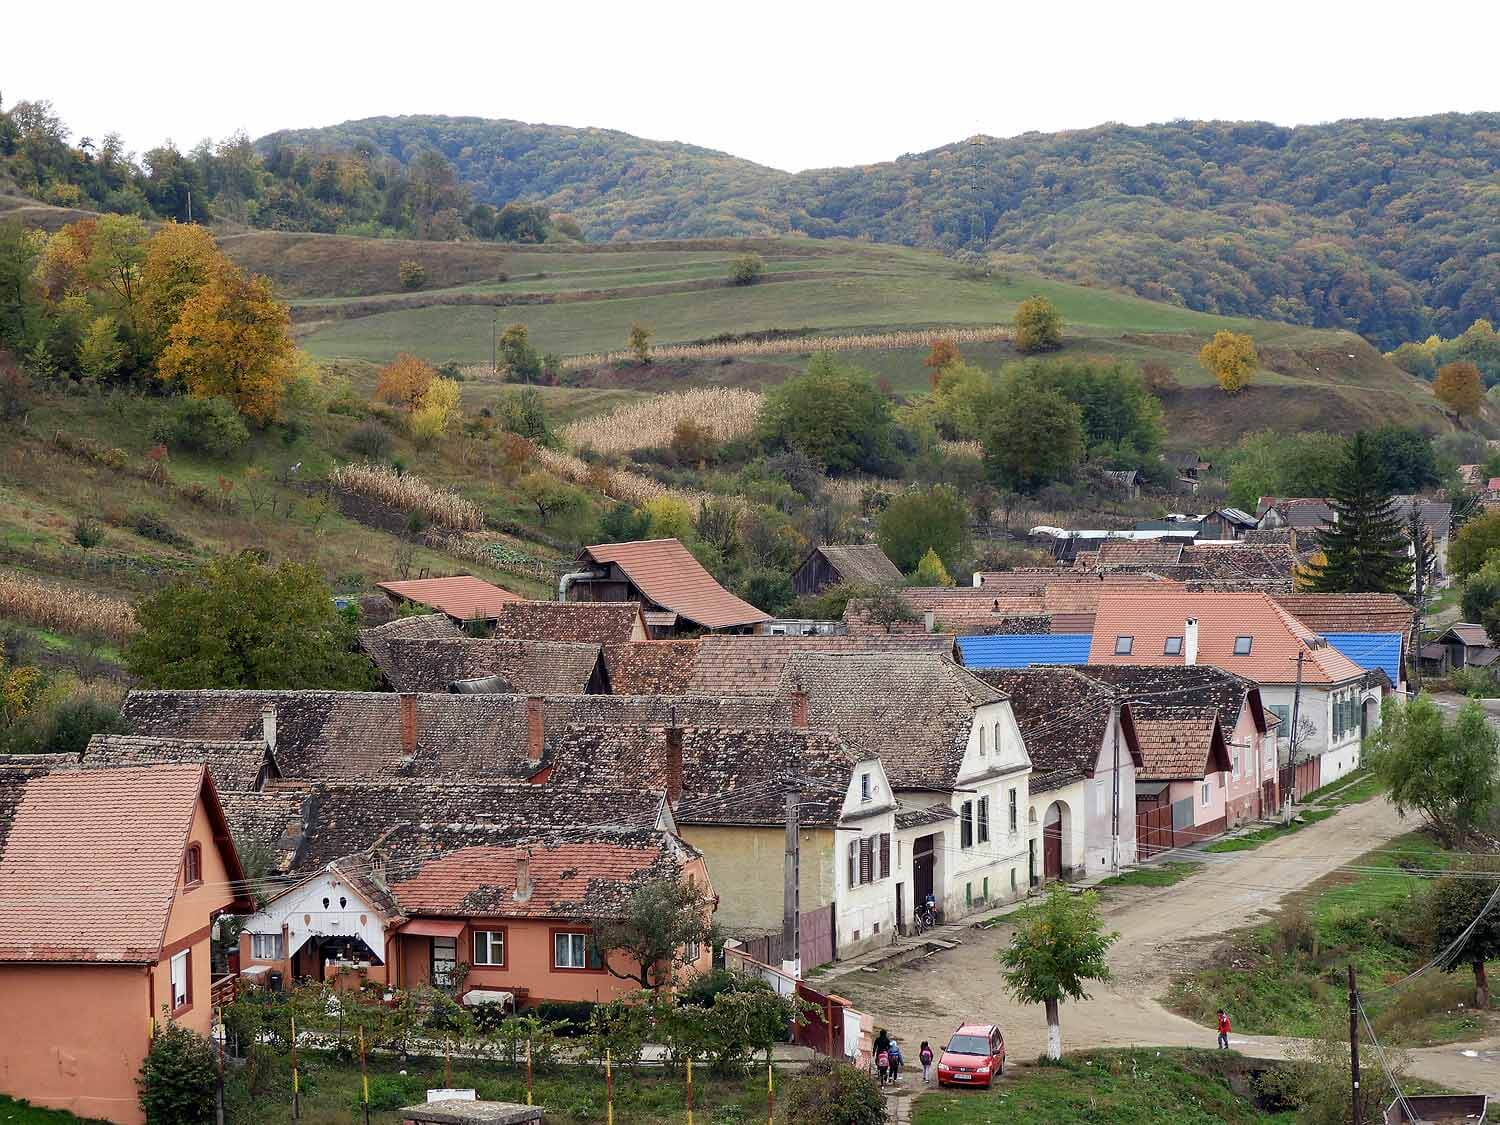 romania-mosna-sleepy-dusty-town.JPG